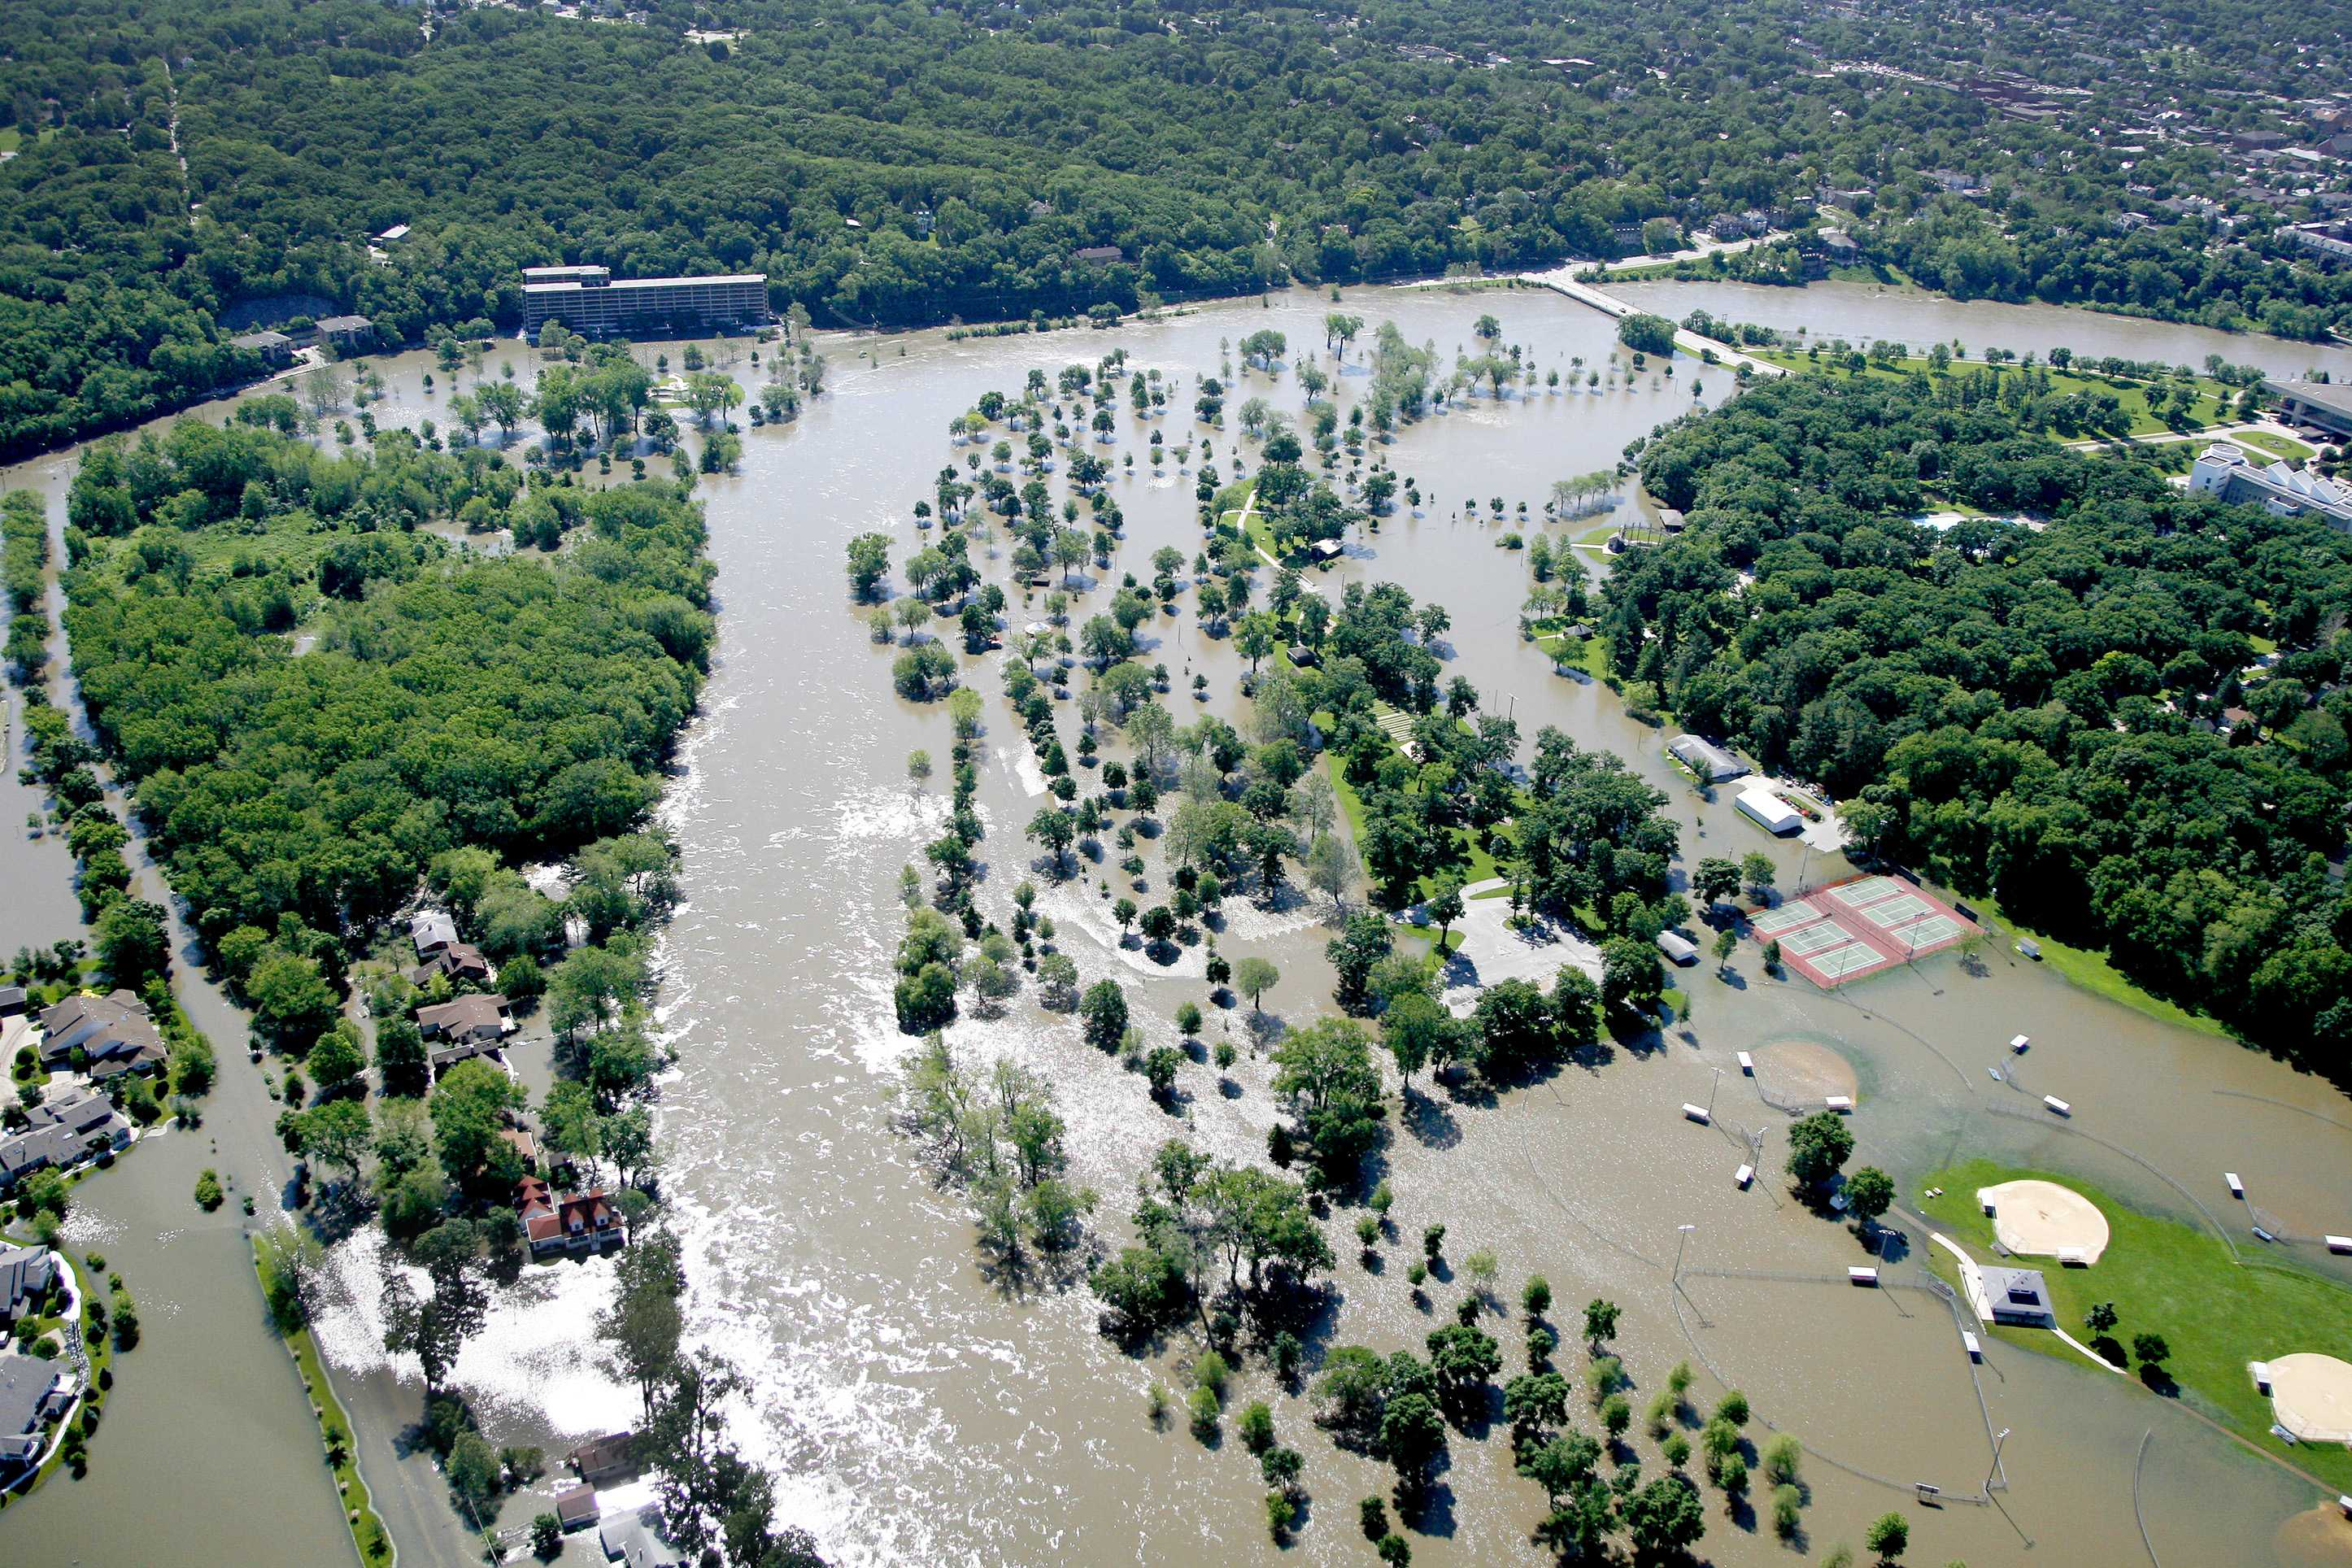 Floodwaters engulf Lower City Park on Tuesday, June 10, 2008. (File photo/The Daily Iowan)